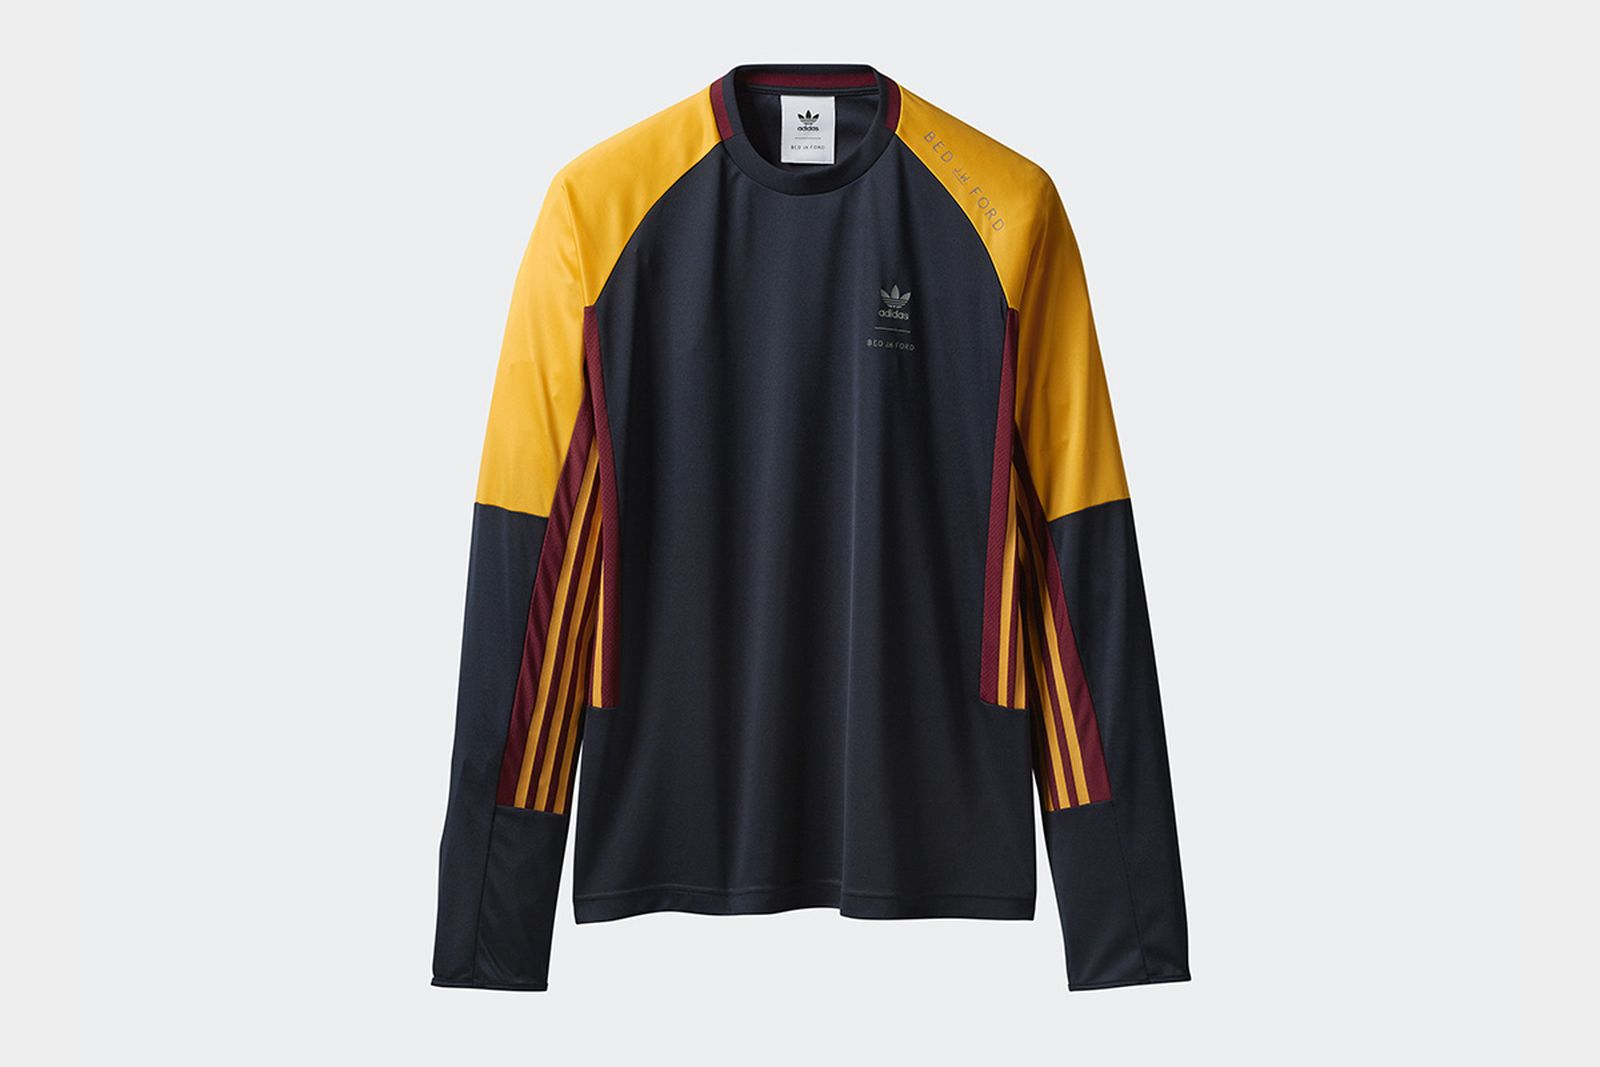 bed jw ford adidas originals fw19 release date price bed j.w. ford